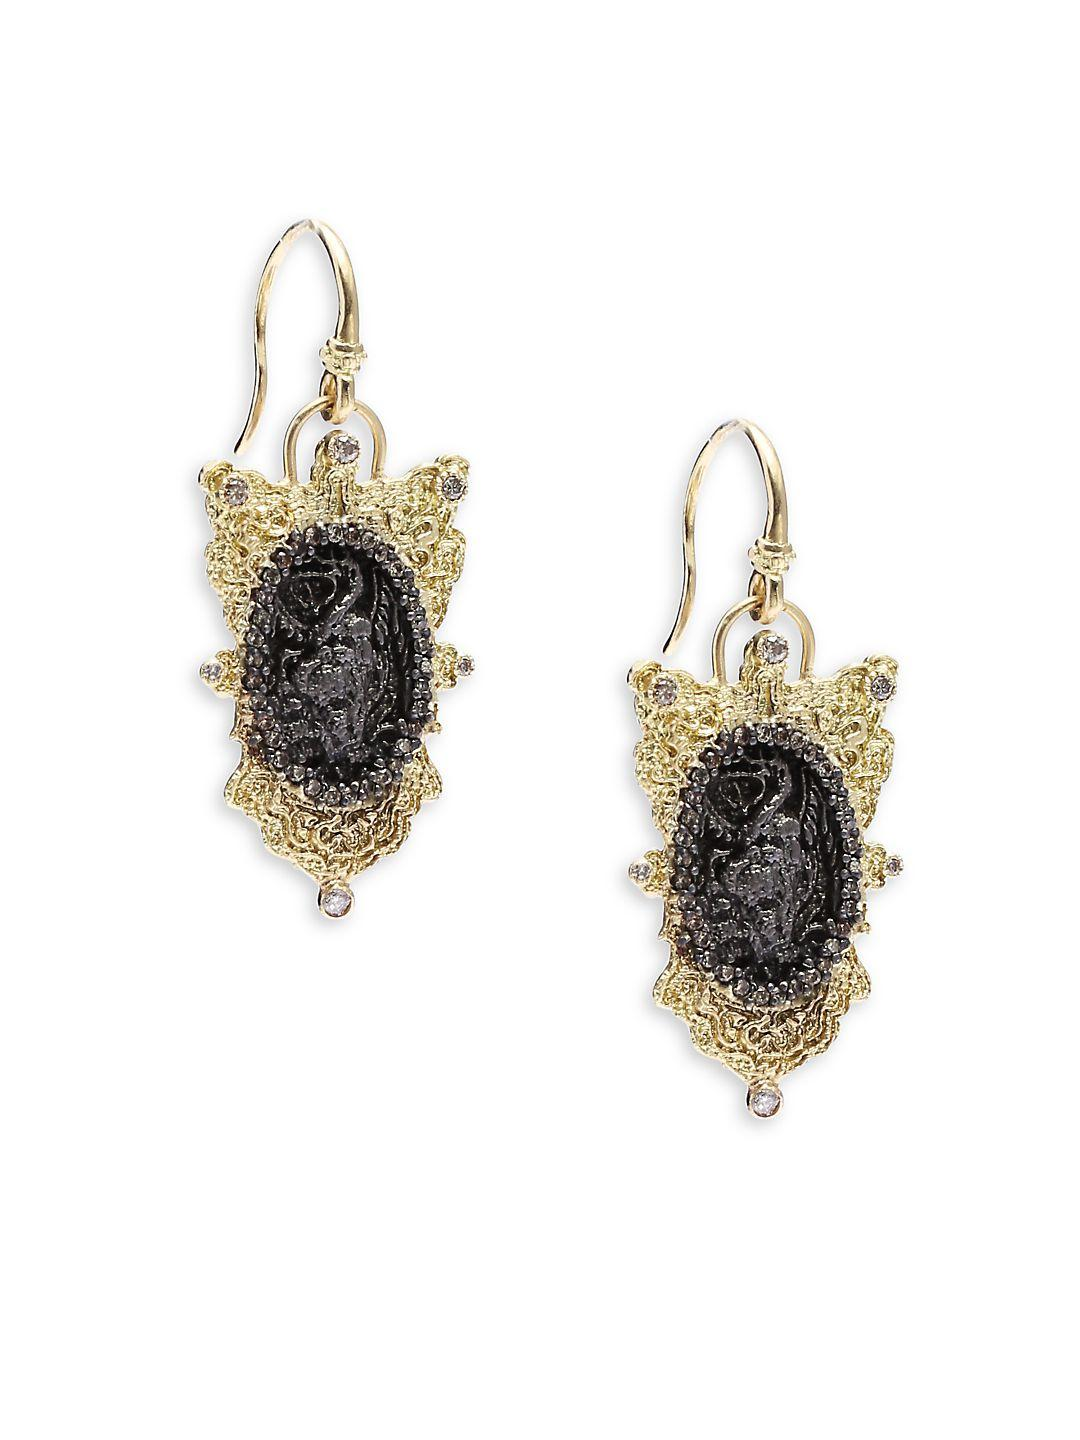 Armenta Old World Pear Cluster Earrings w/ Mixed Stones & Diamonds gQR0mJrU